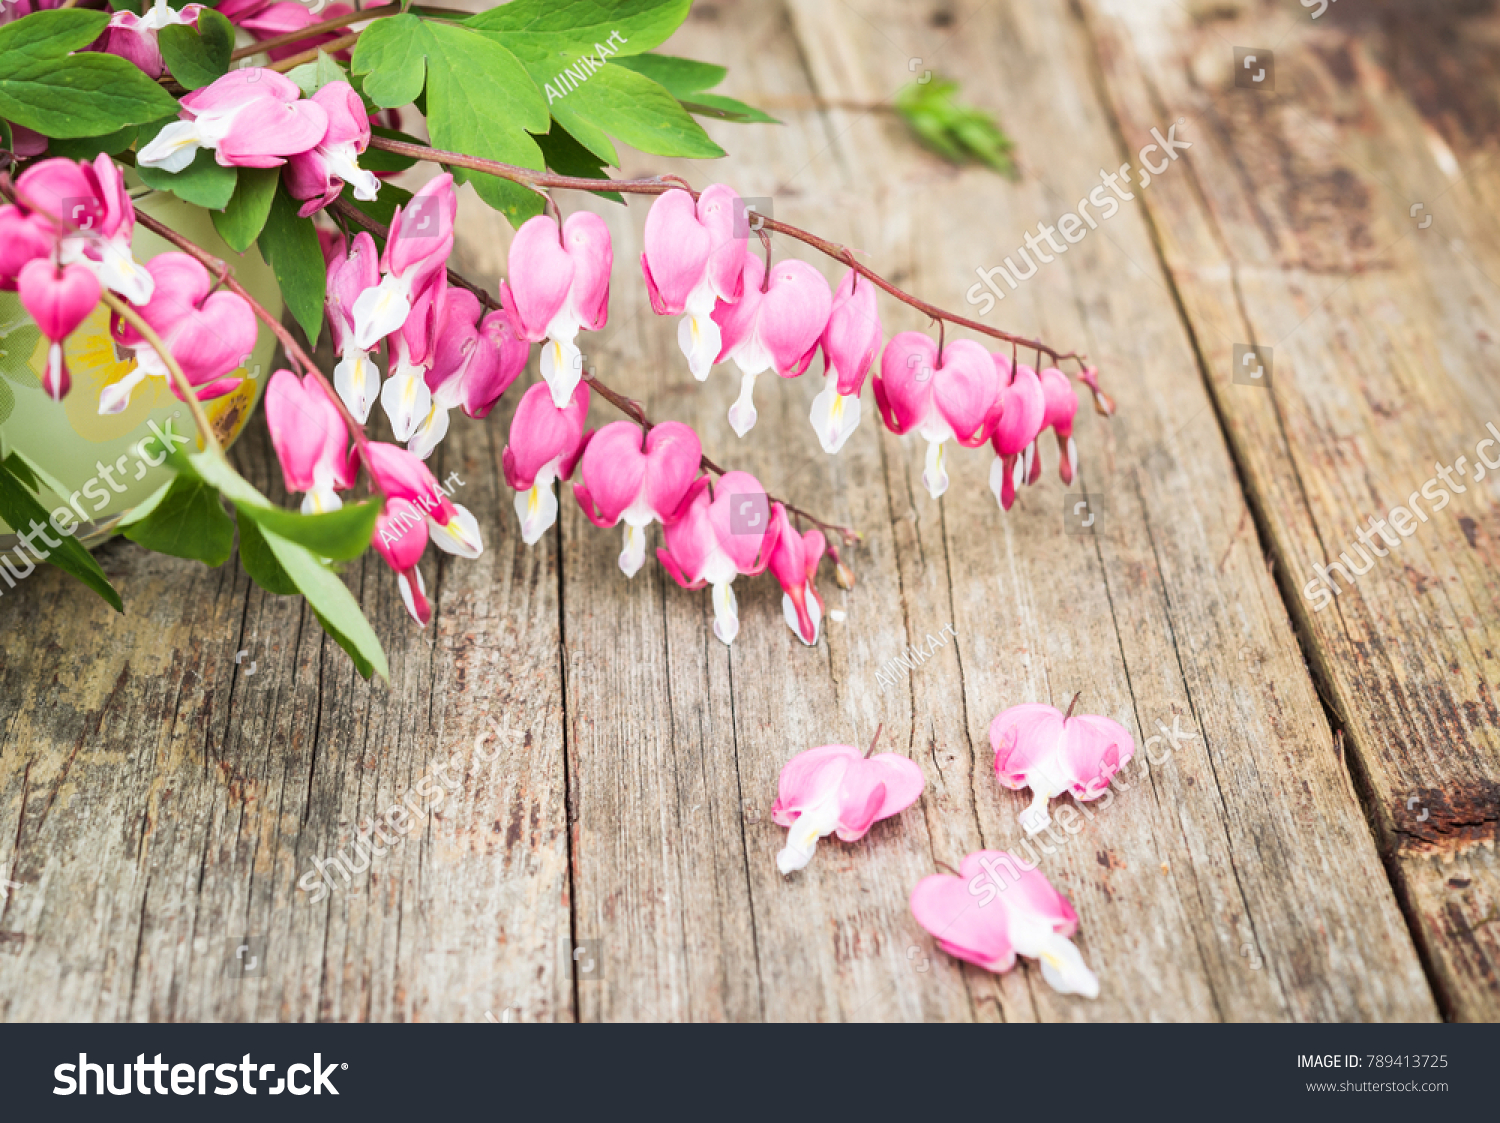 Bouquet Pink Flowers Heartshaped Flowers Bleeding Stock Photo (100 ...